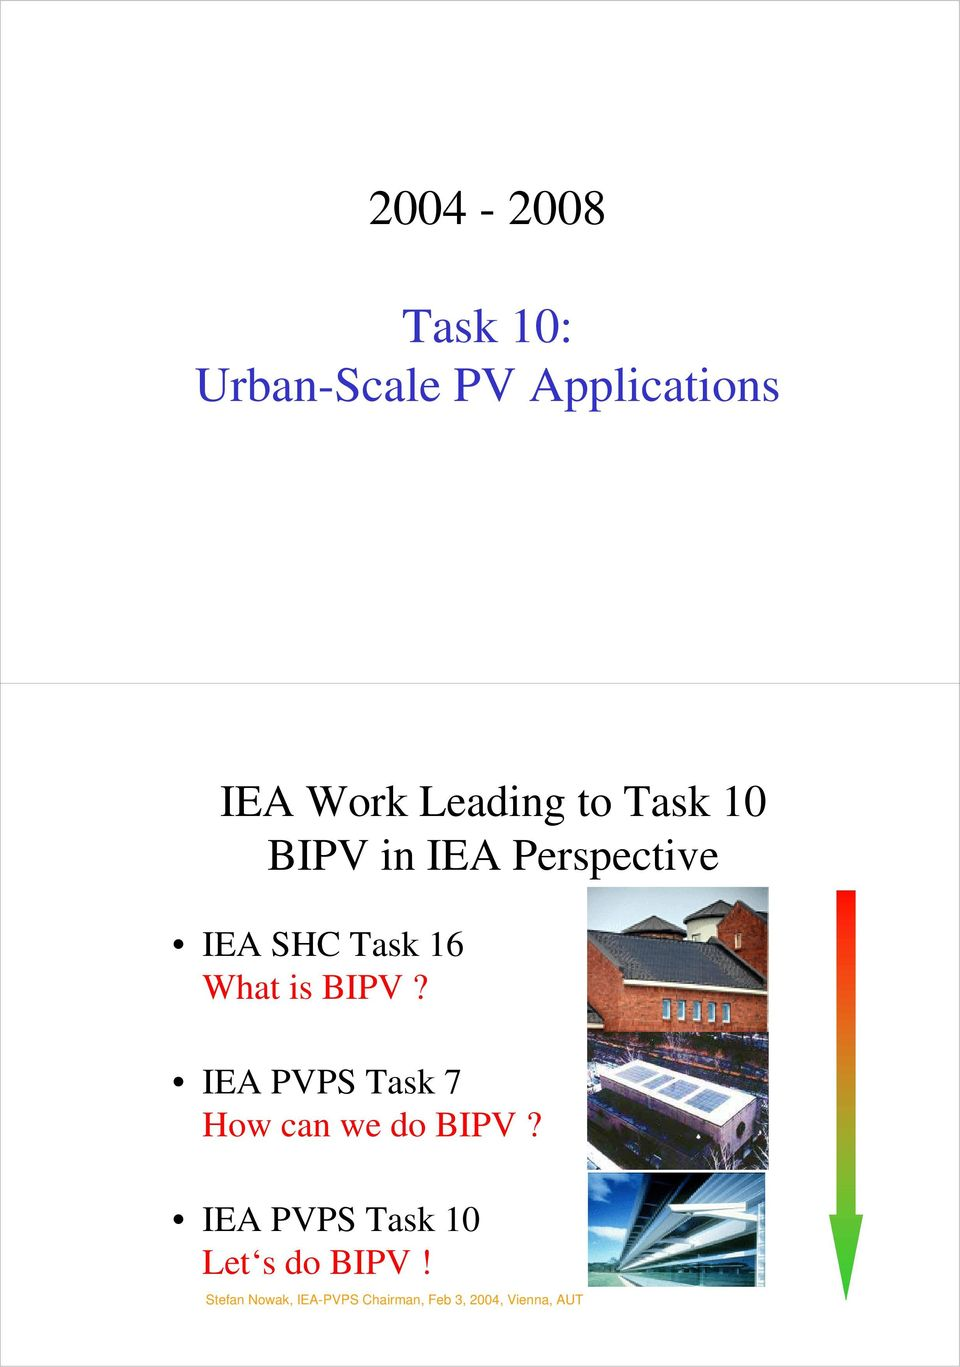 IEA PVPS Task 7 How can we do BIPV?